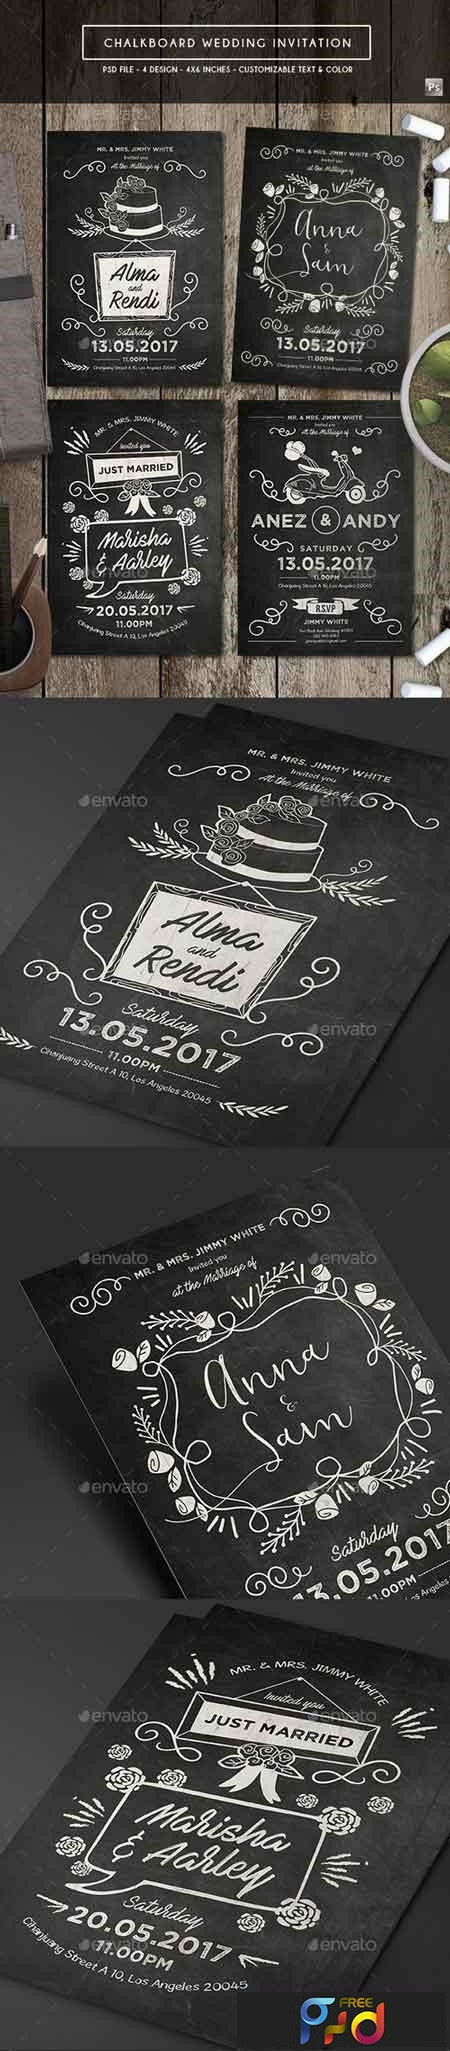 Chalkboard Invitation Template Free